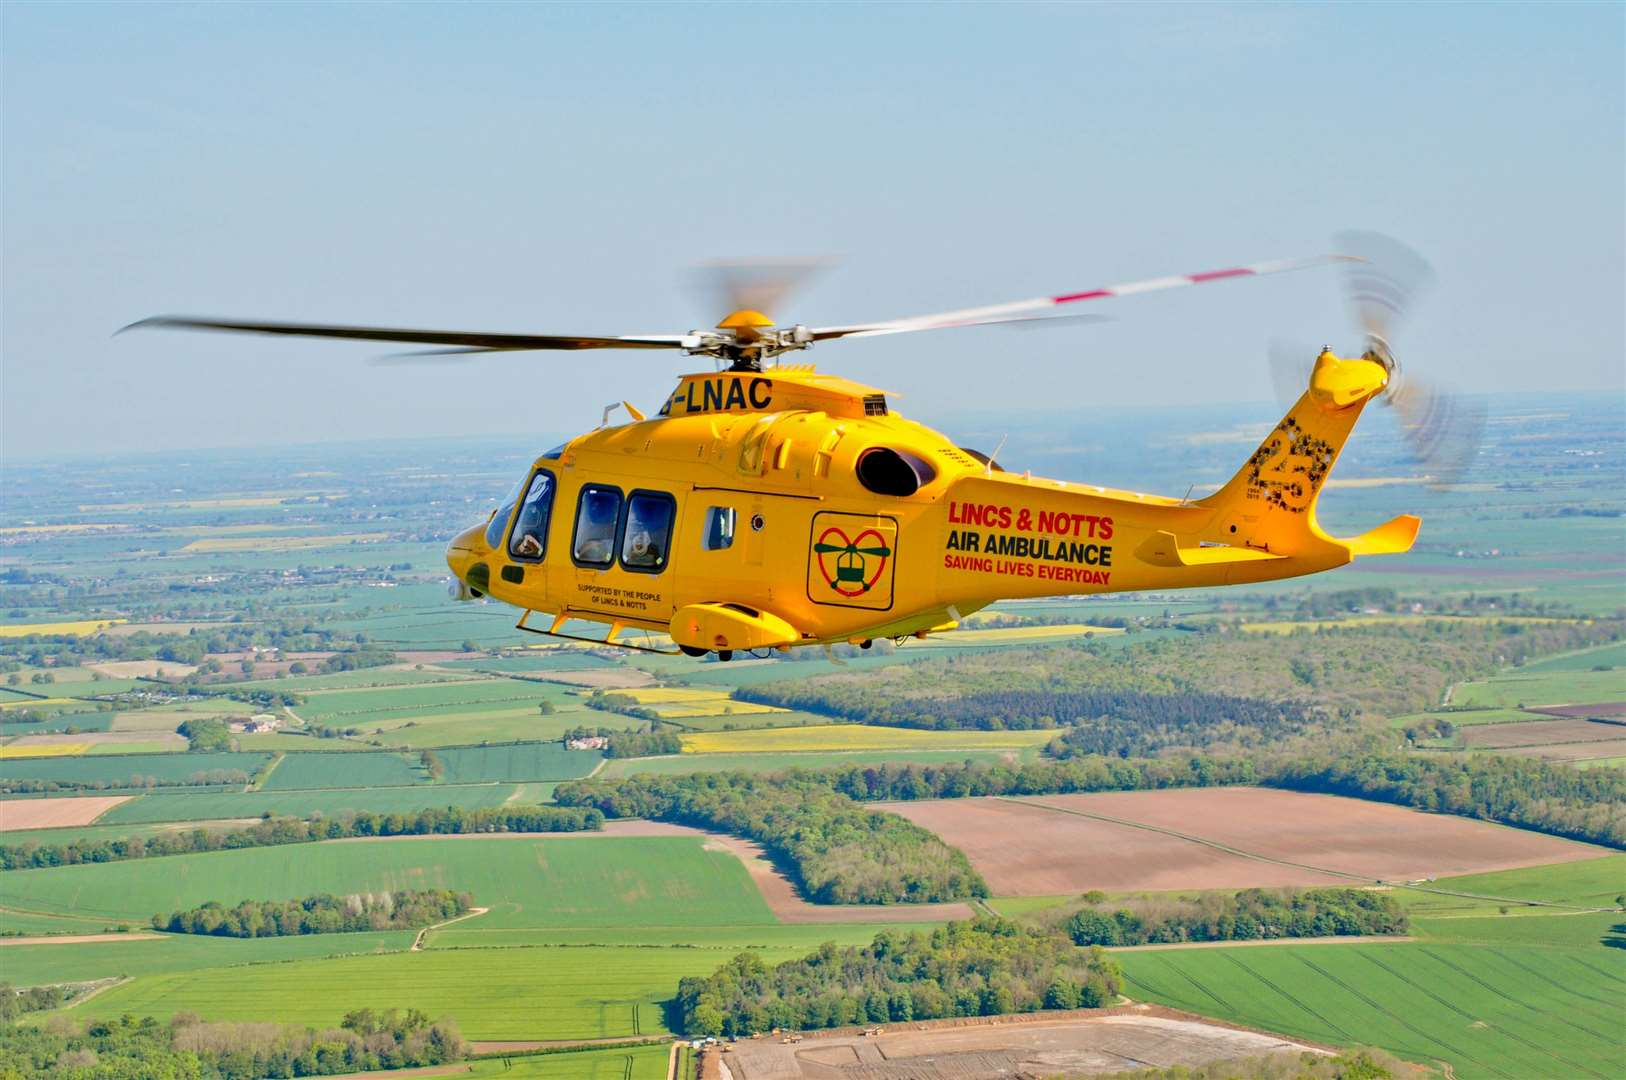 Lincs & Notts Air Ambulance has carried out more than 20,000 missions in its 25-year history.Photo supplied.